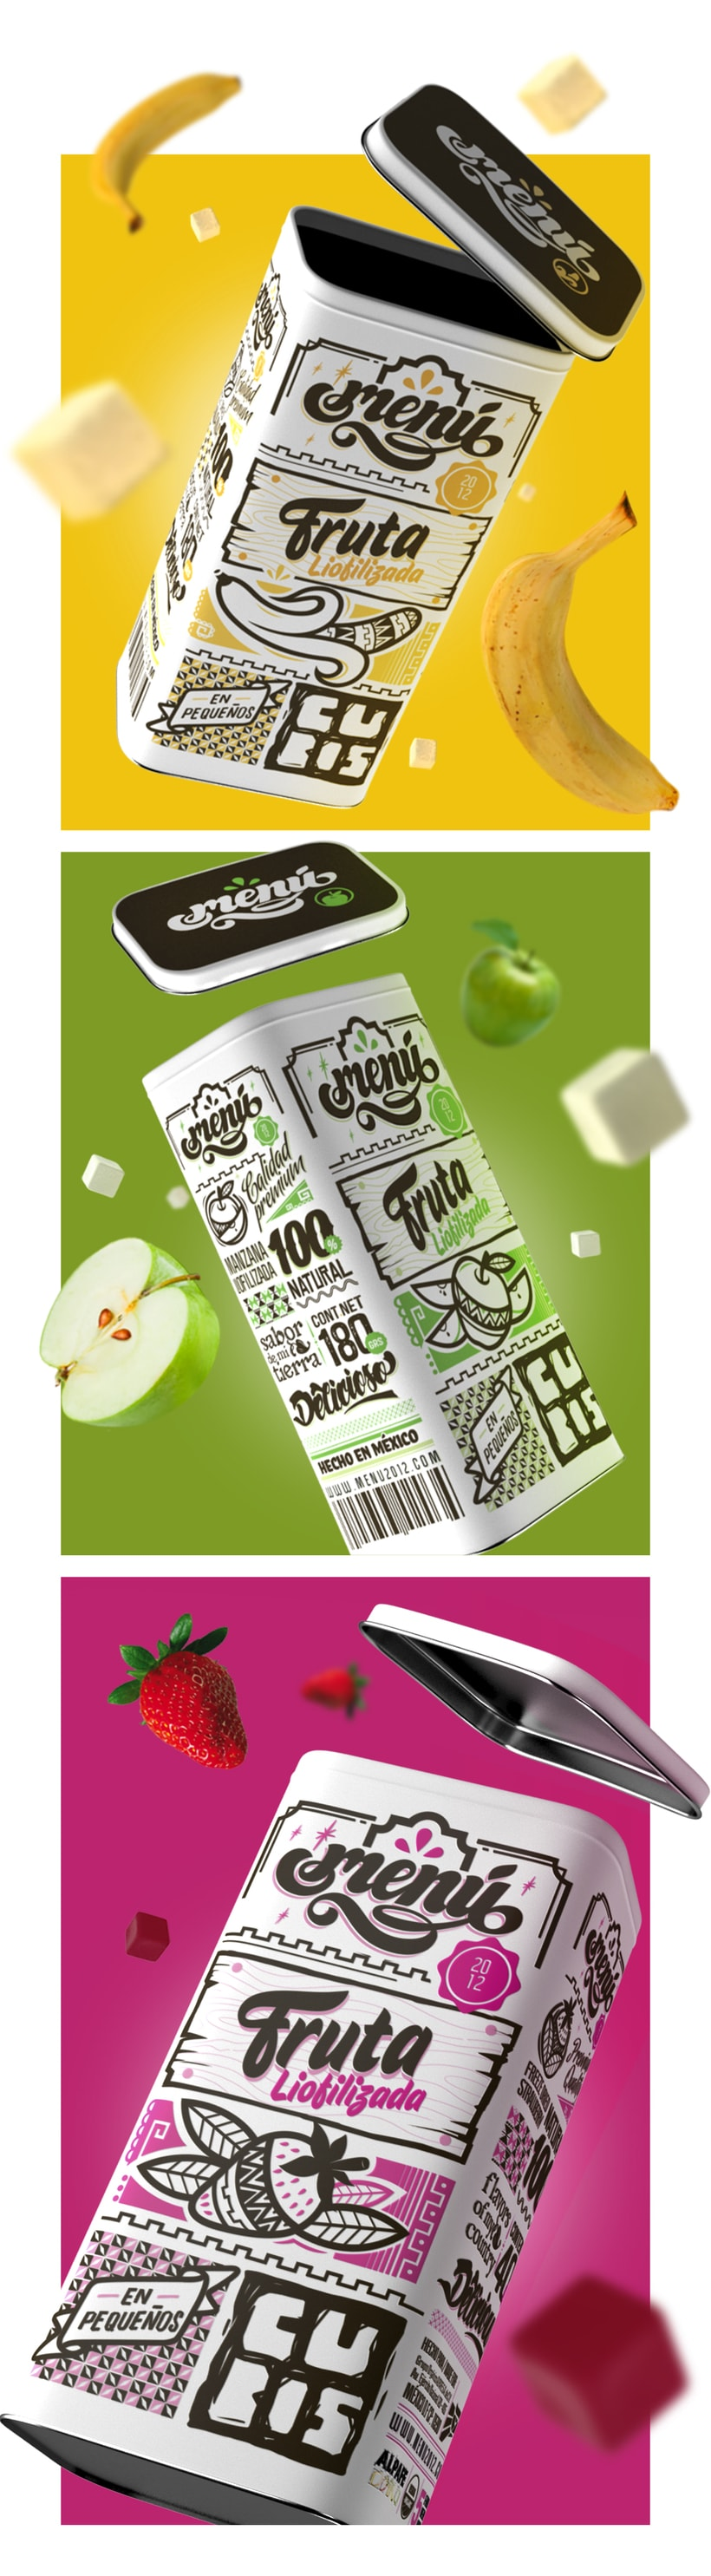 Menú Fruit - Packaging 1